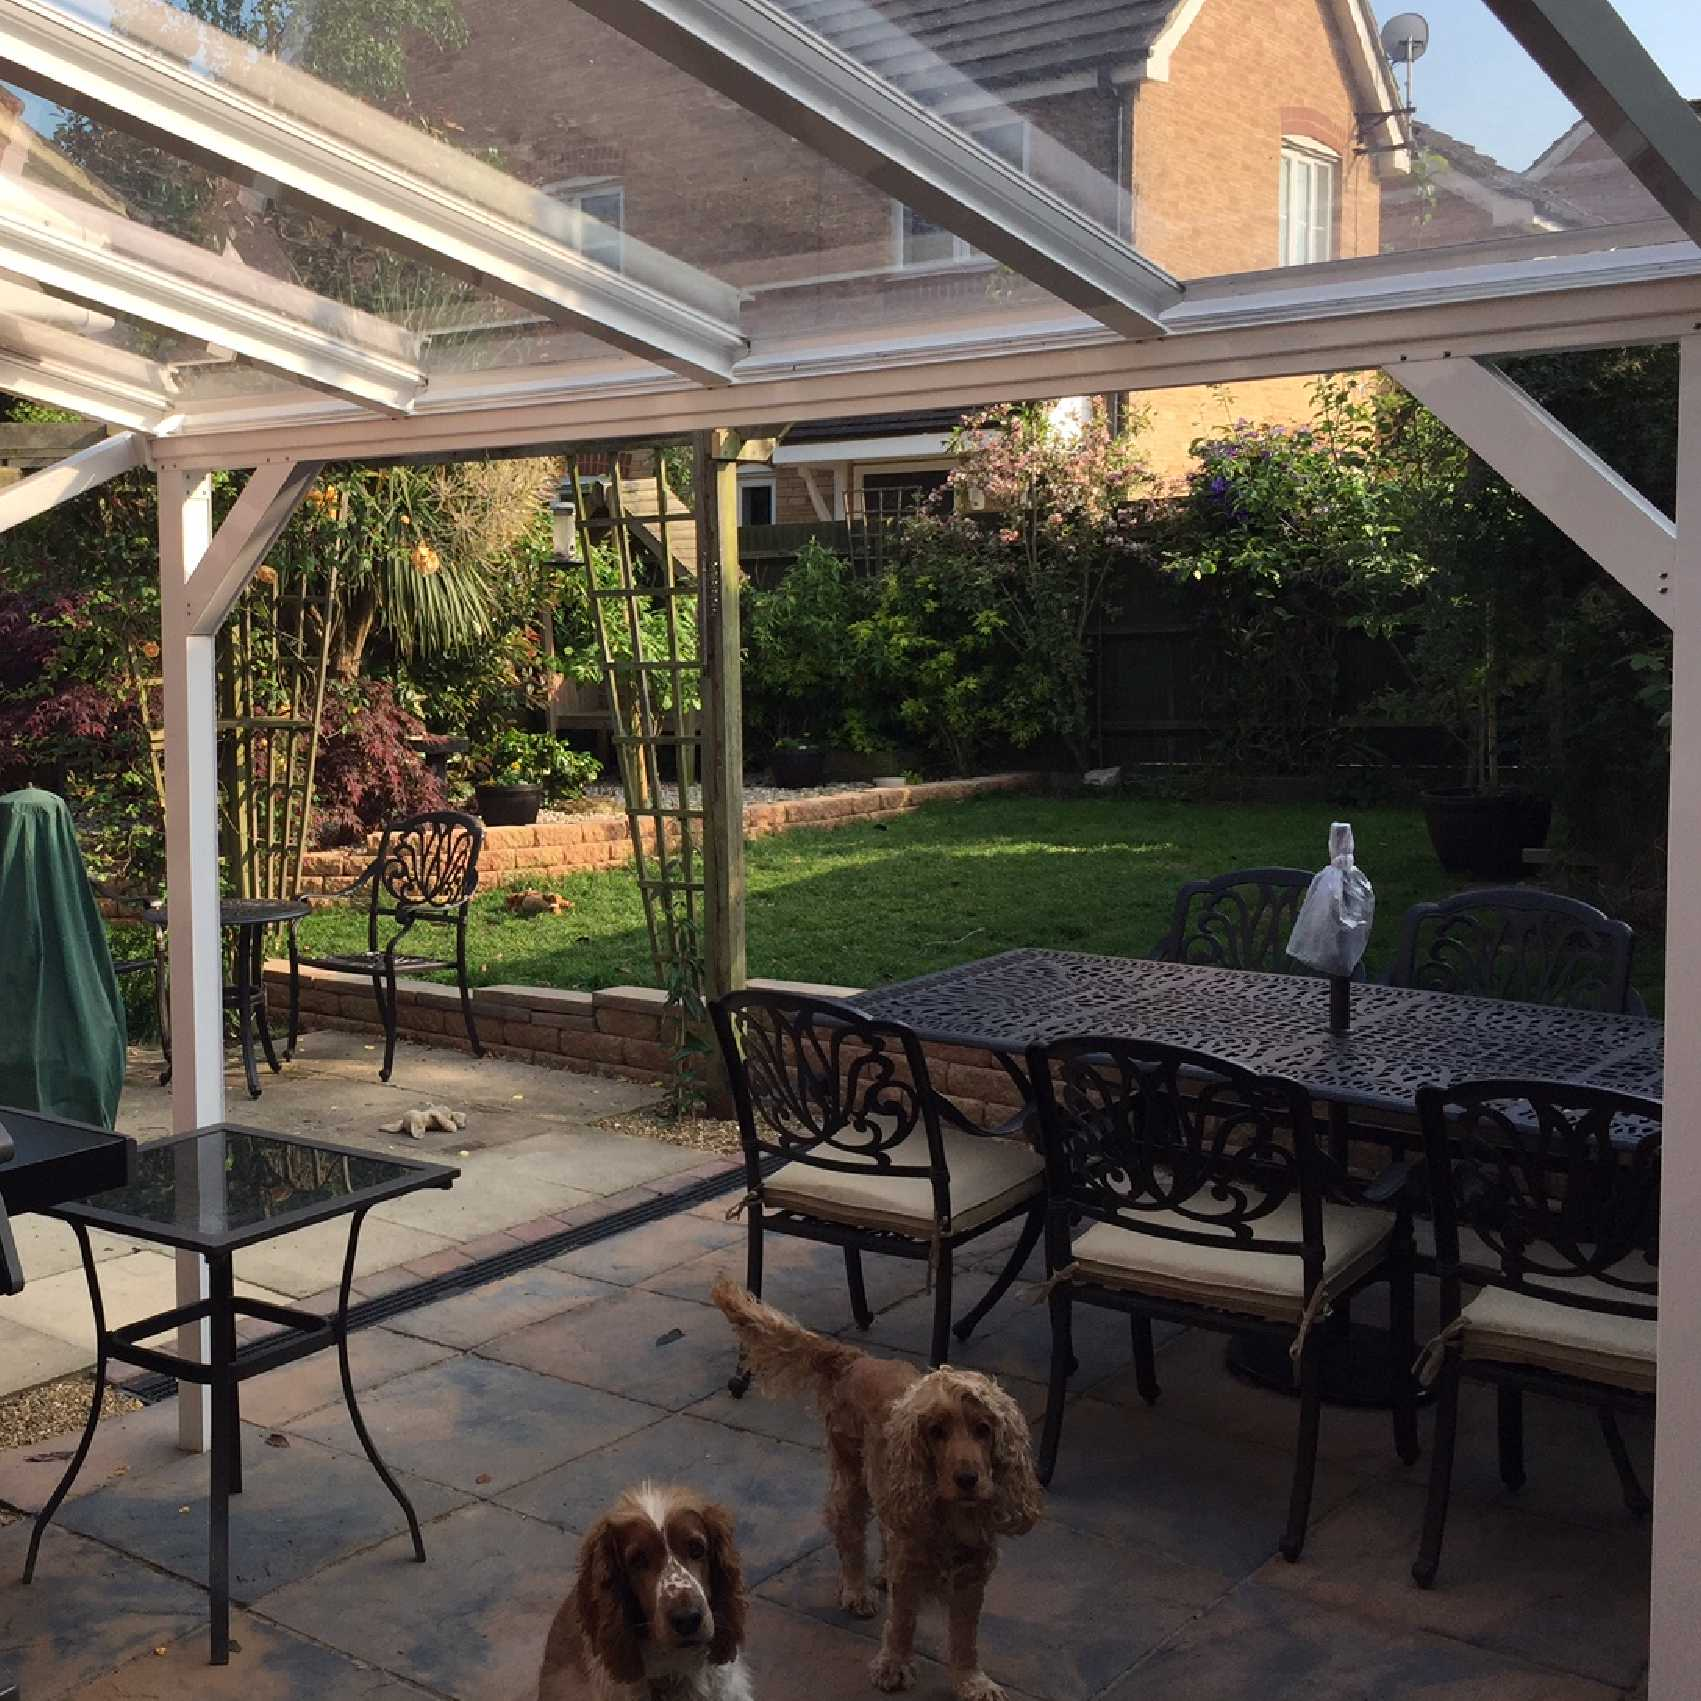 Affordable Omega Smart Lean-To Canopy UNGLAZED for 6mm Glazing - 2.8m (W) x 1.5m (P), (2) Supporting Posts